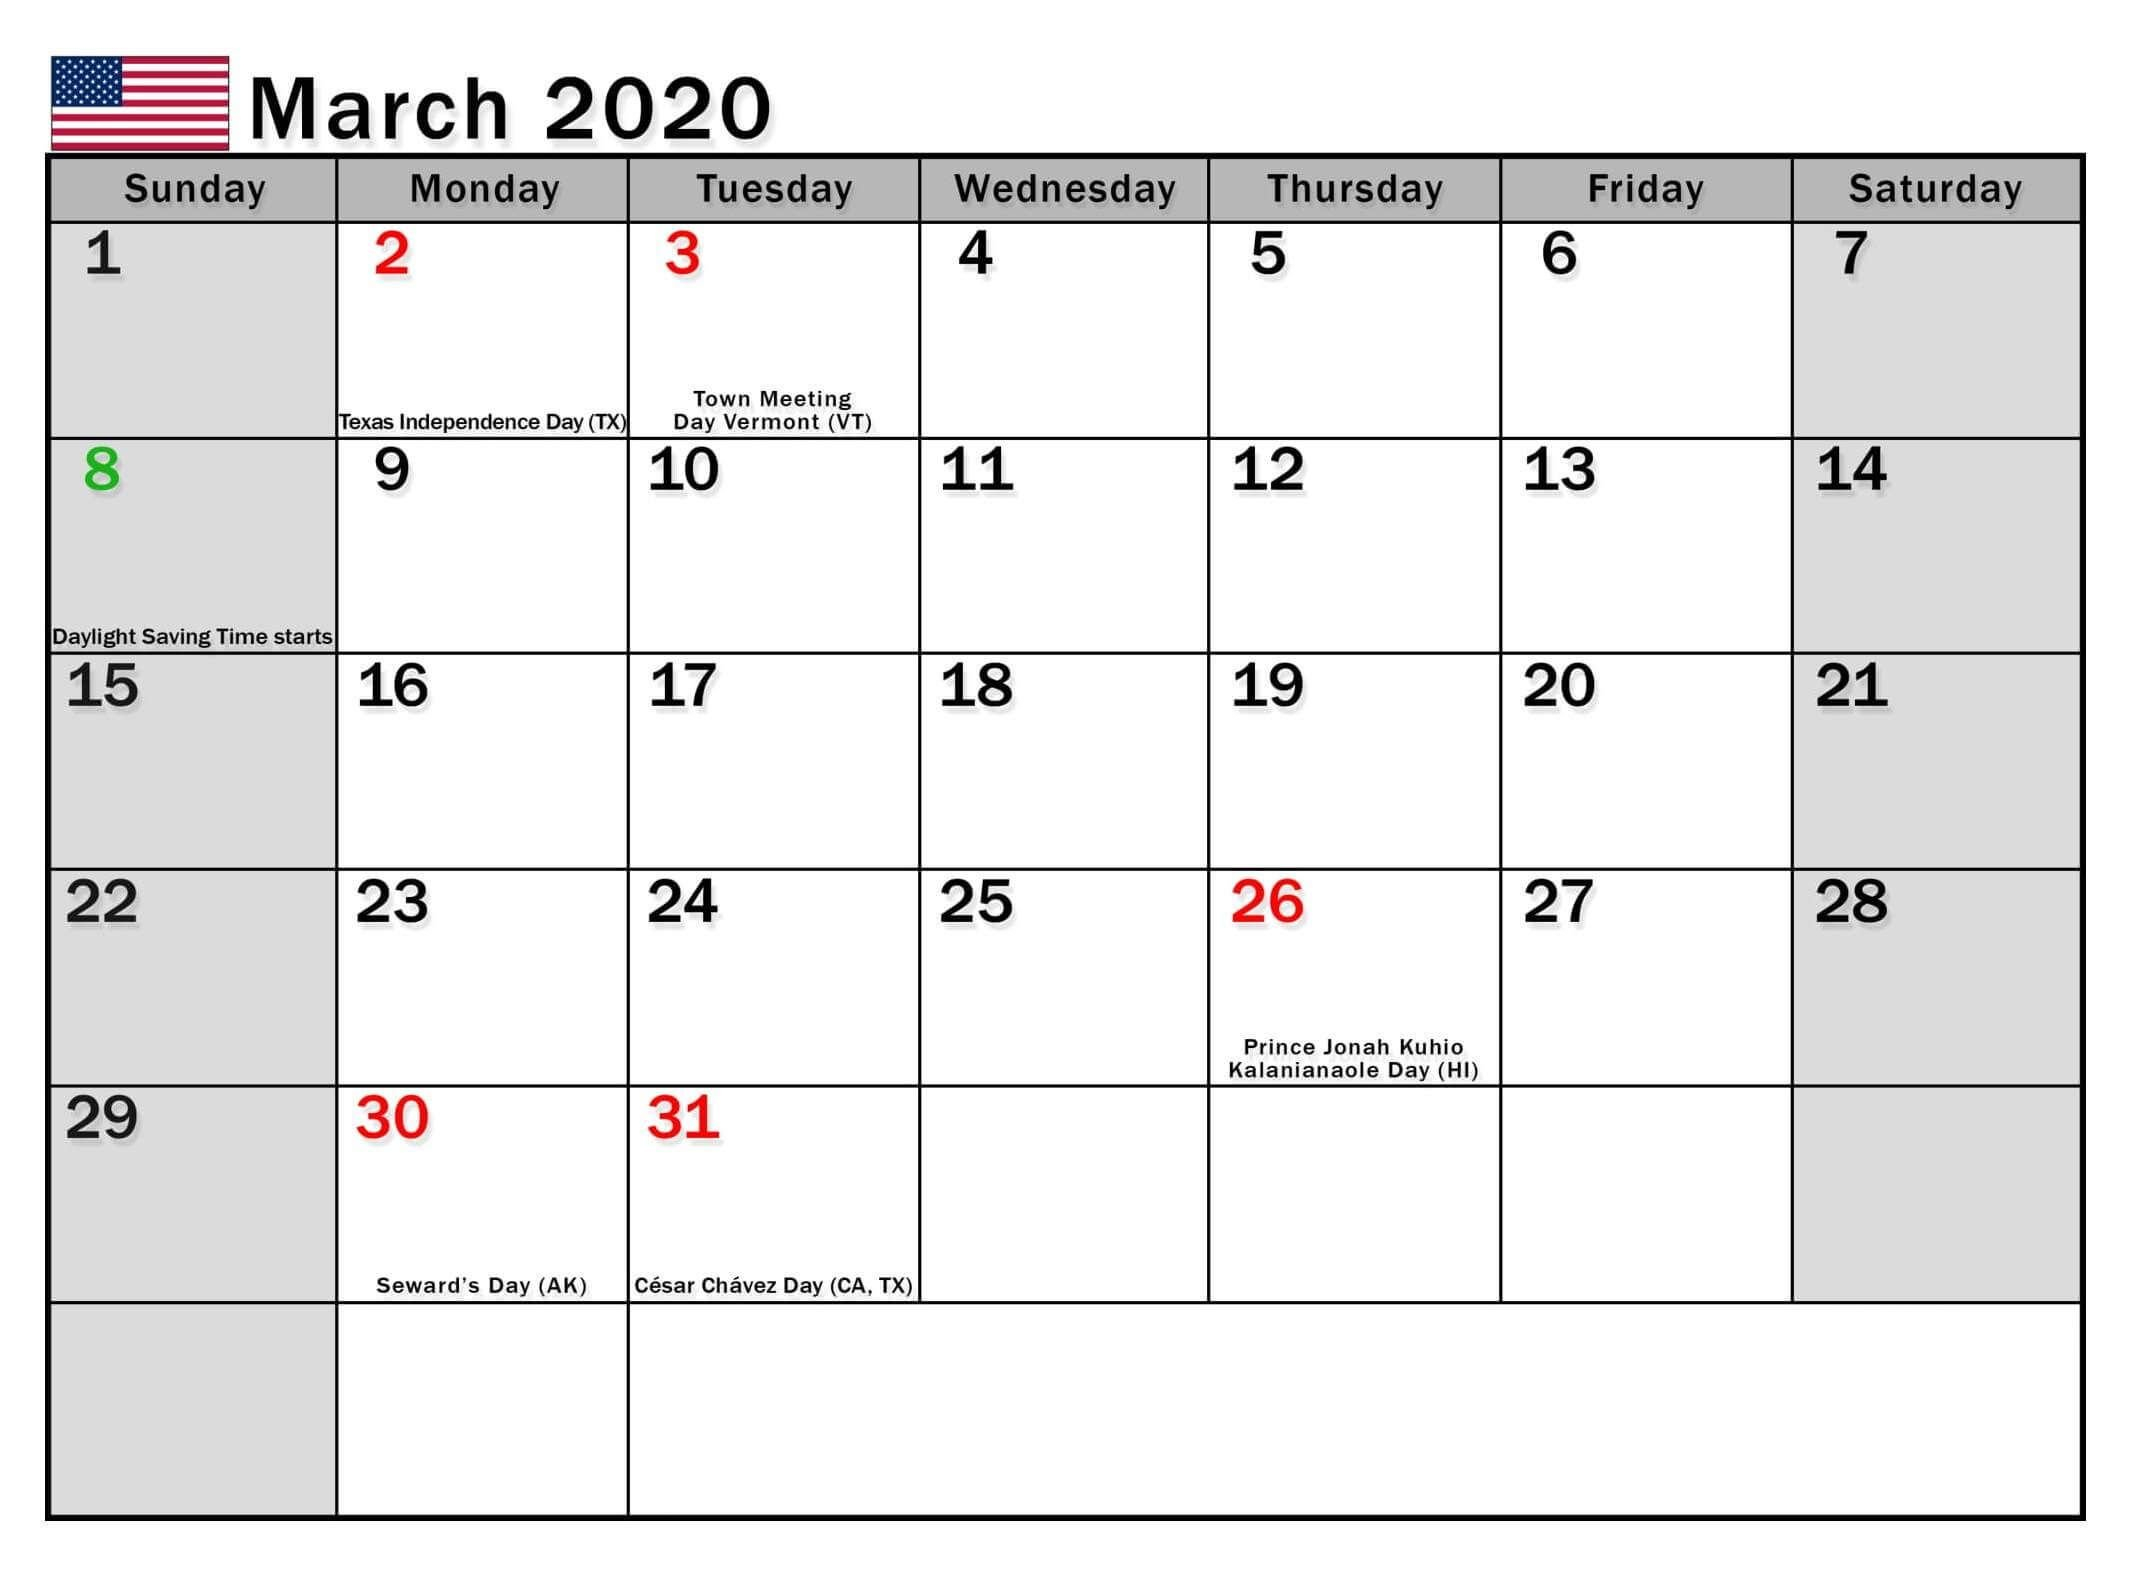 March -2020 Calendar Us Bank Holidays In 2020 | Holiday Calendear That I Can Edit With Holidays On It